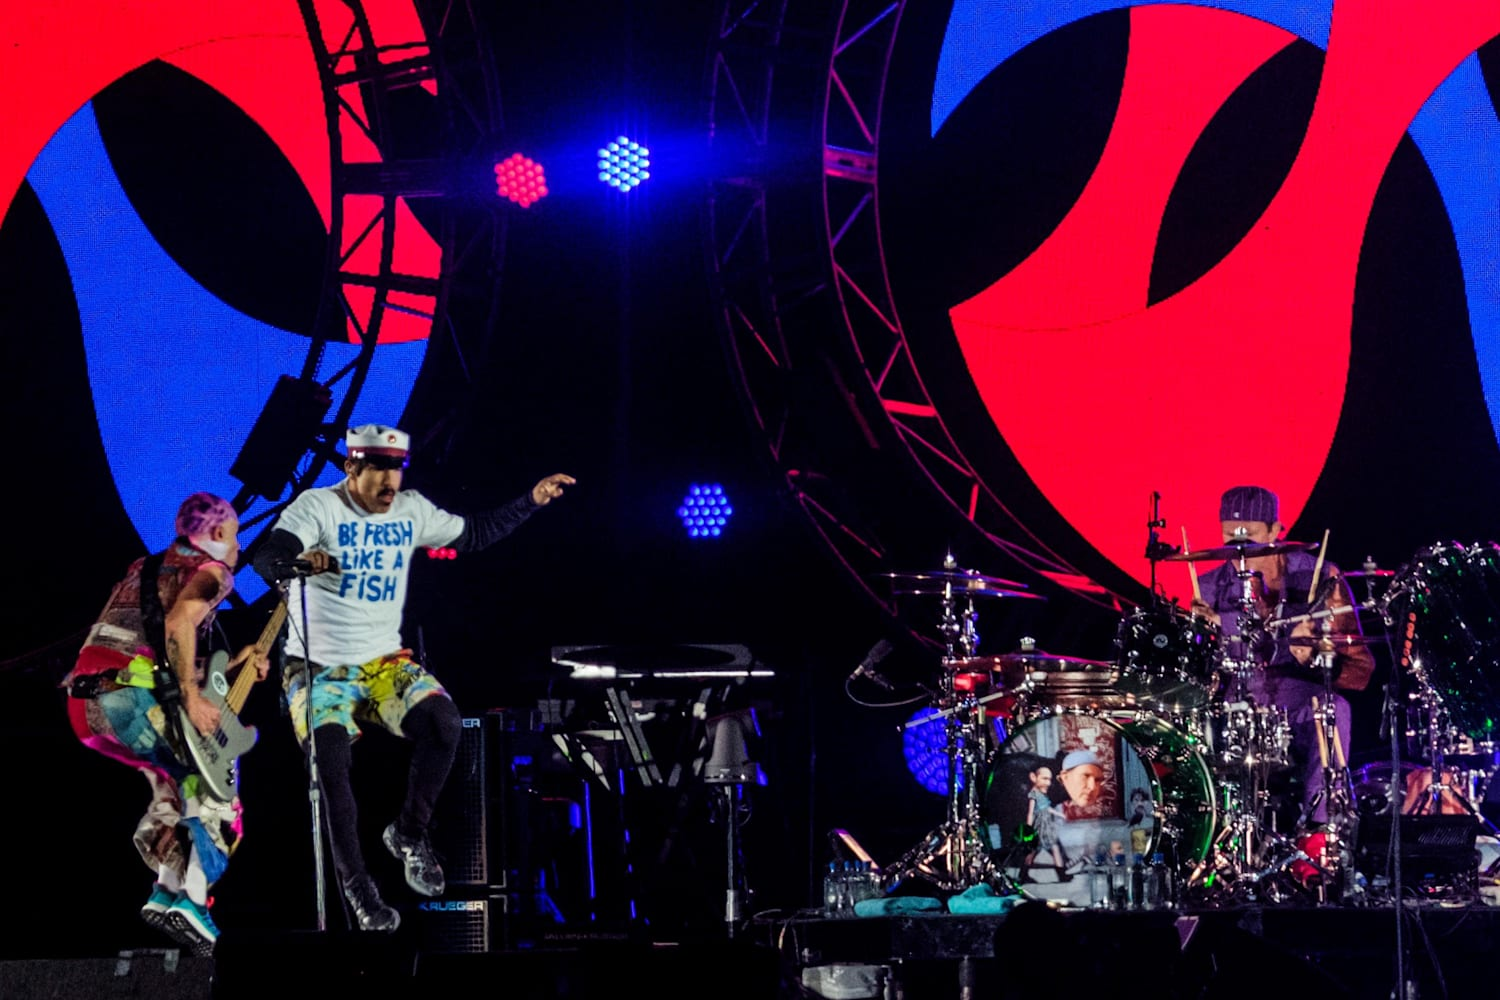 The latest tweets from red hot chilipeppers (@chilipeppers). Red Hot Chili Peppers Songs: Top 10 Best Tracks